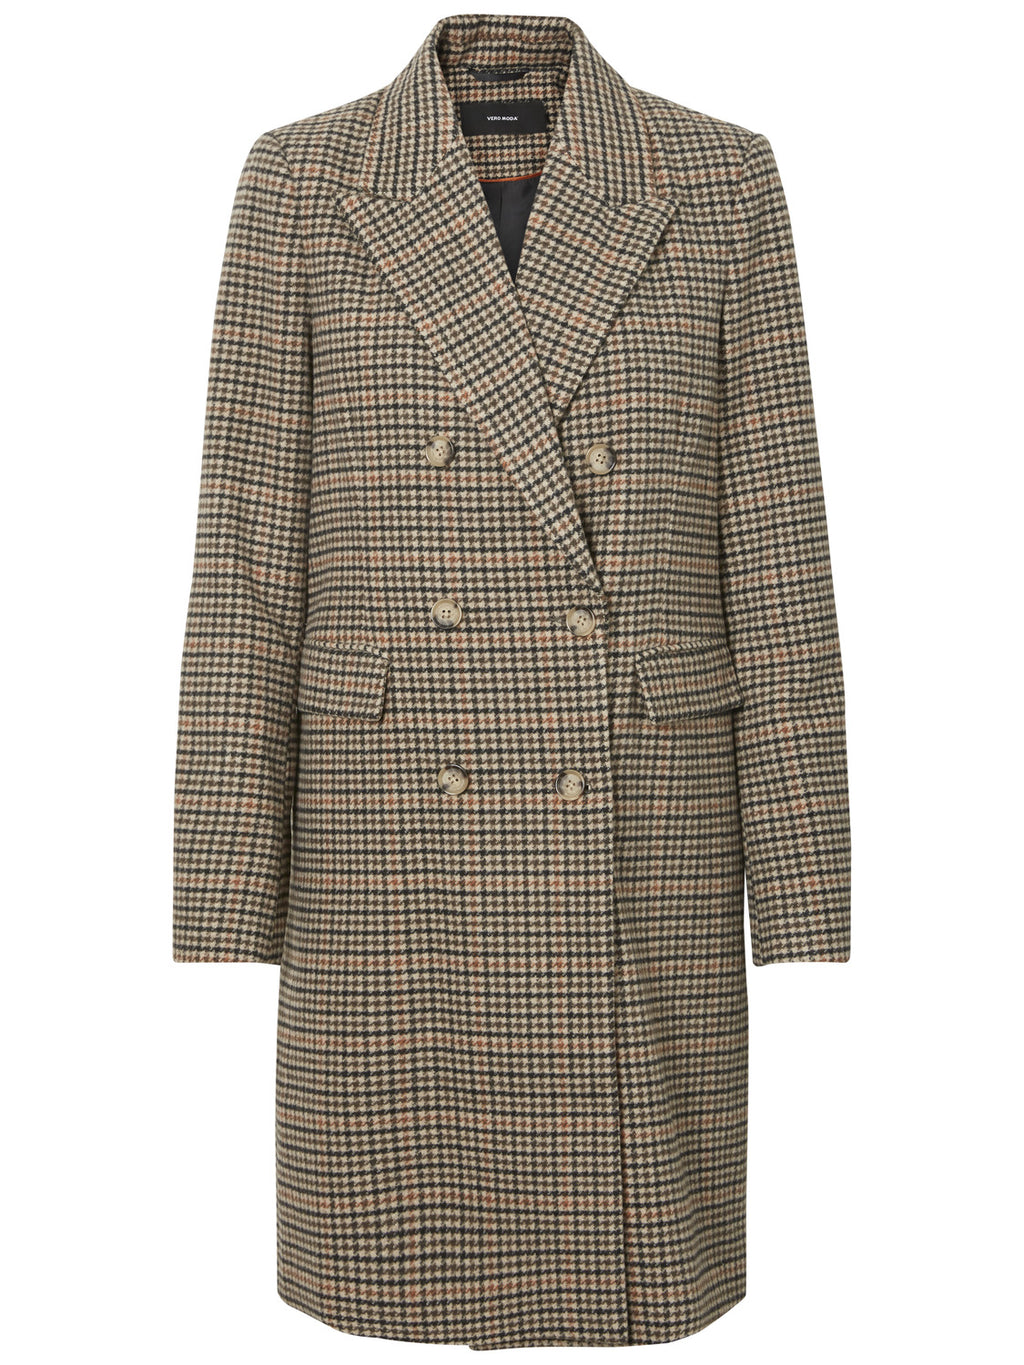 Double Breasted Checked Houndstooth Long Wool Coat - Cultur'd Collective